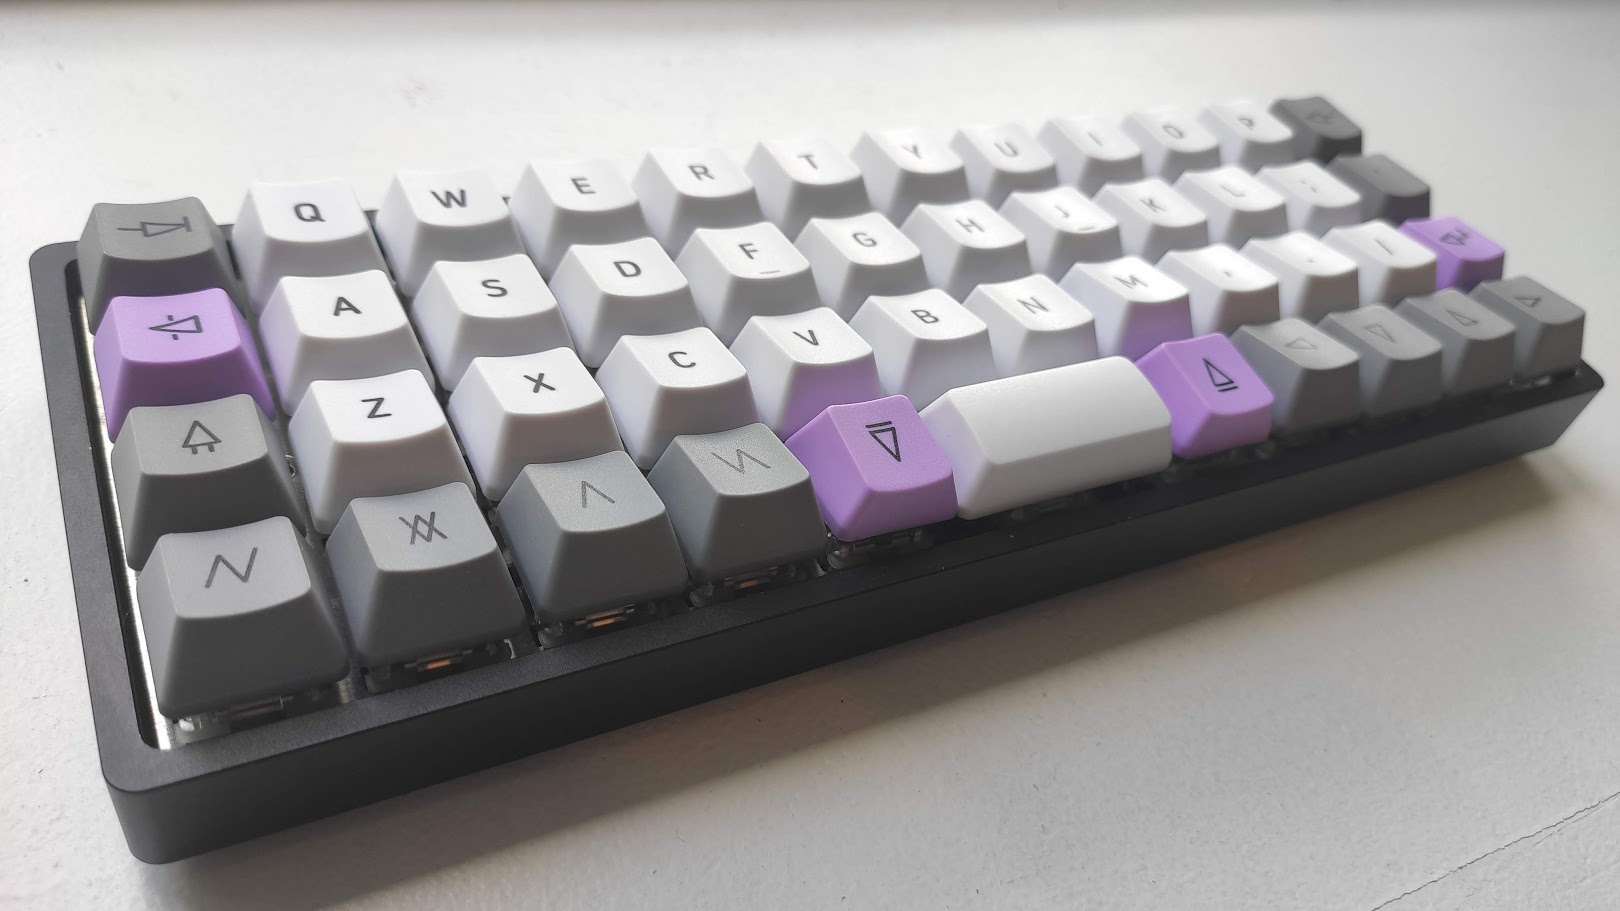 Thoughts on Keyboards